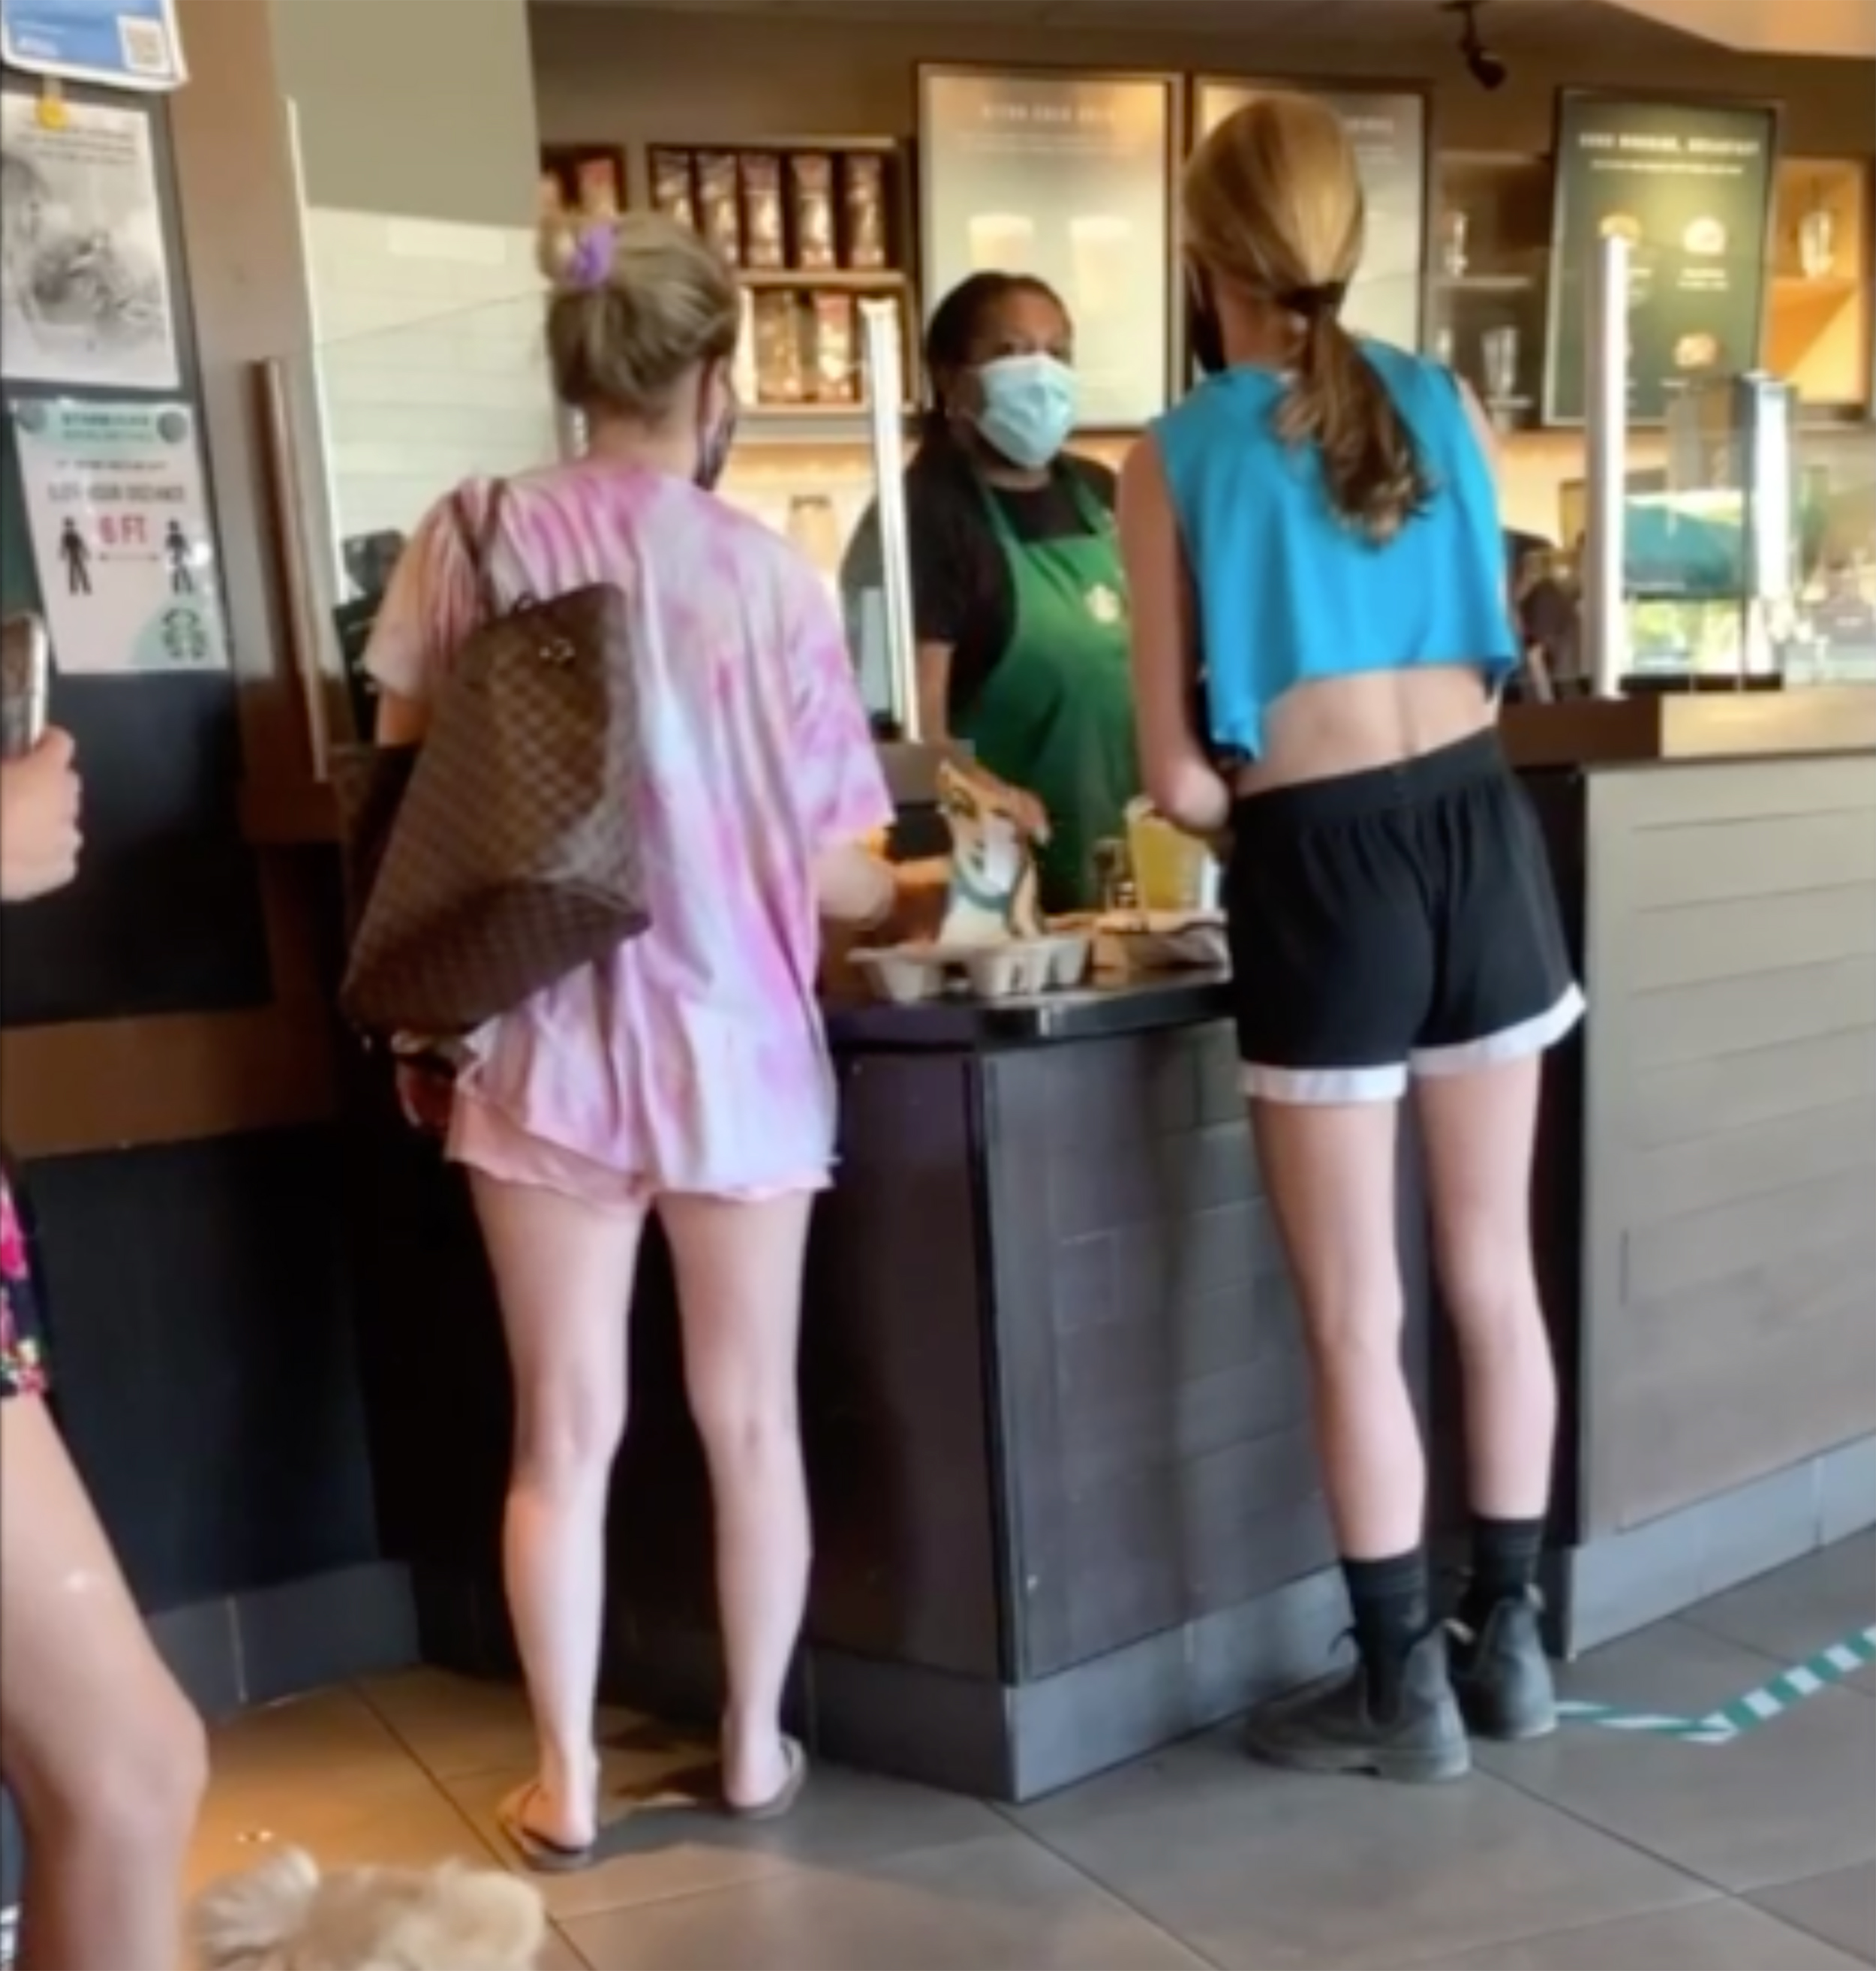 White woman caught on video yelling obscenities at a Black Starbucks barista over face mask